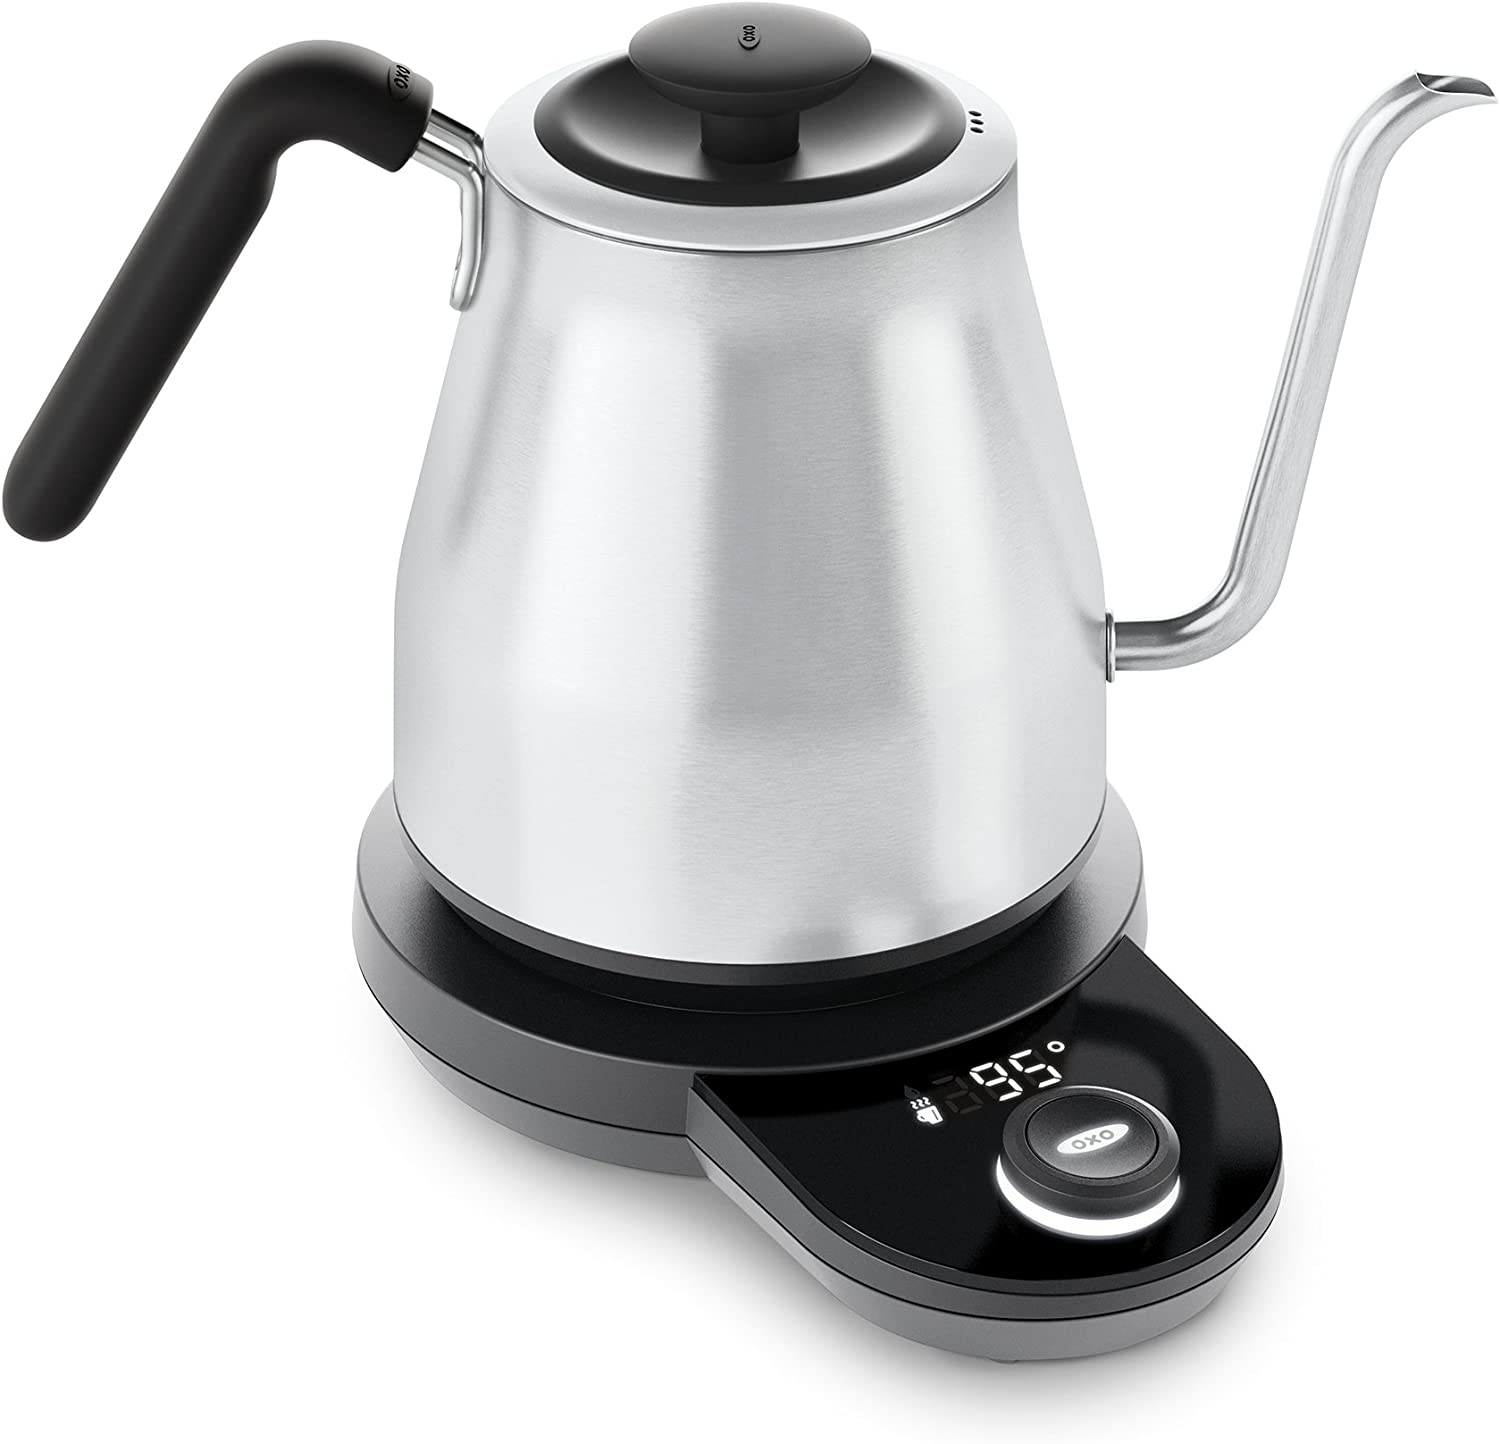 OXO BREW Adjustable Temperature Electric Kettle